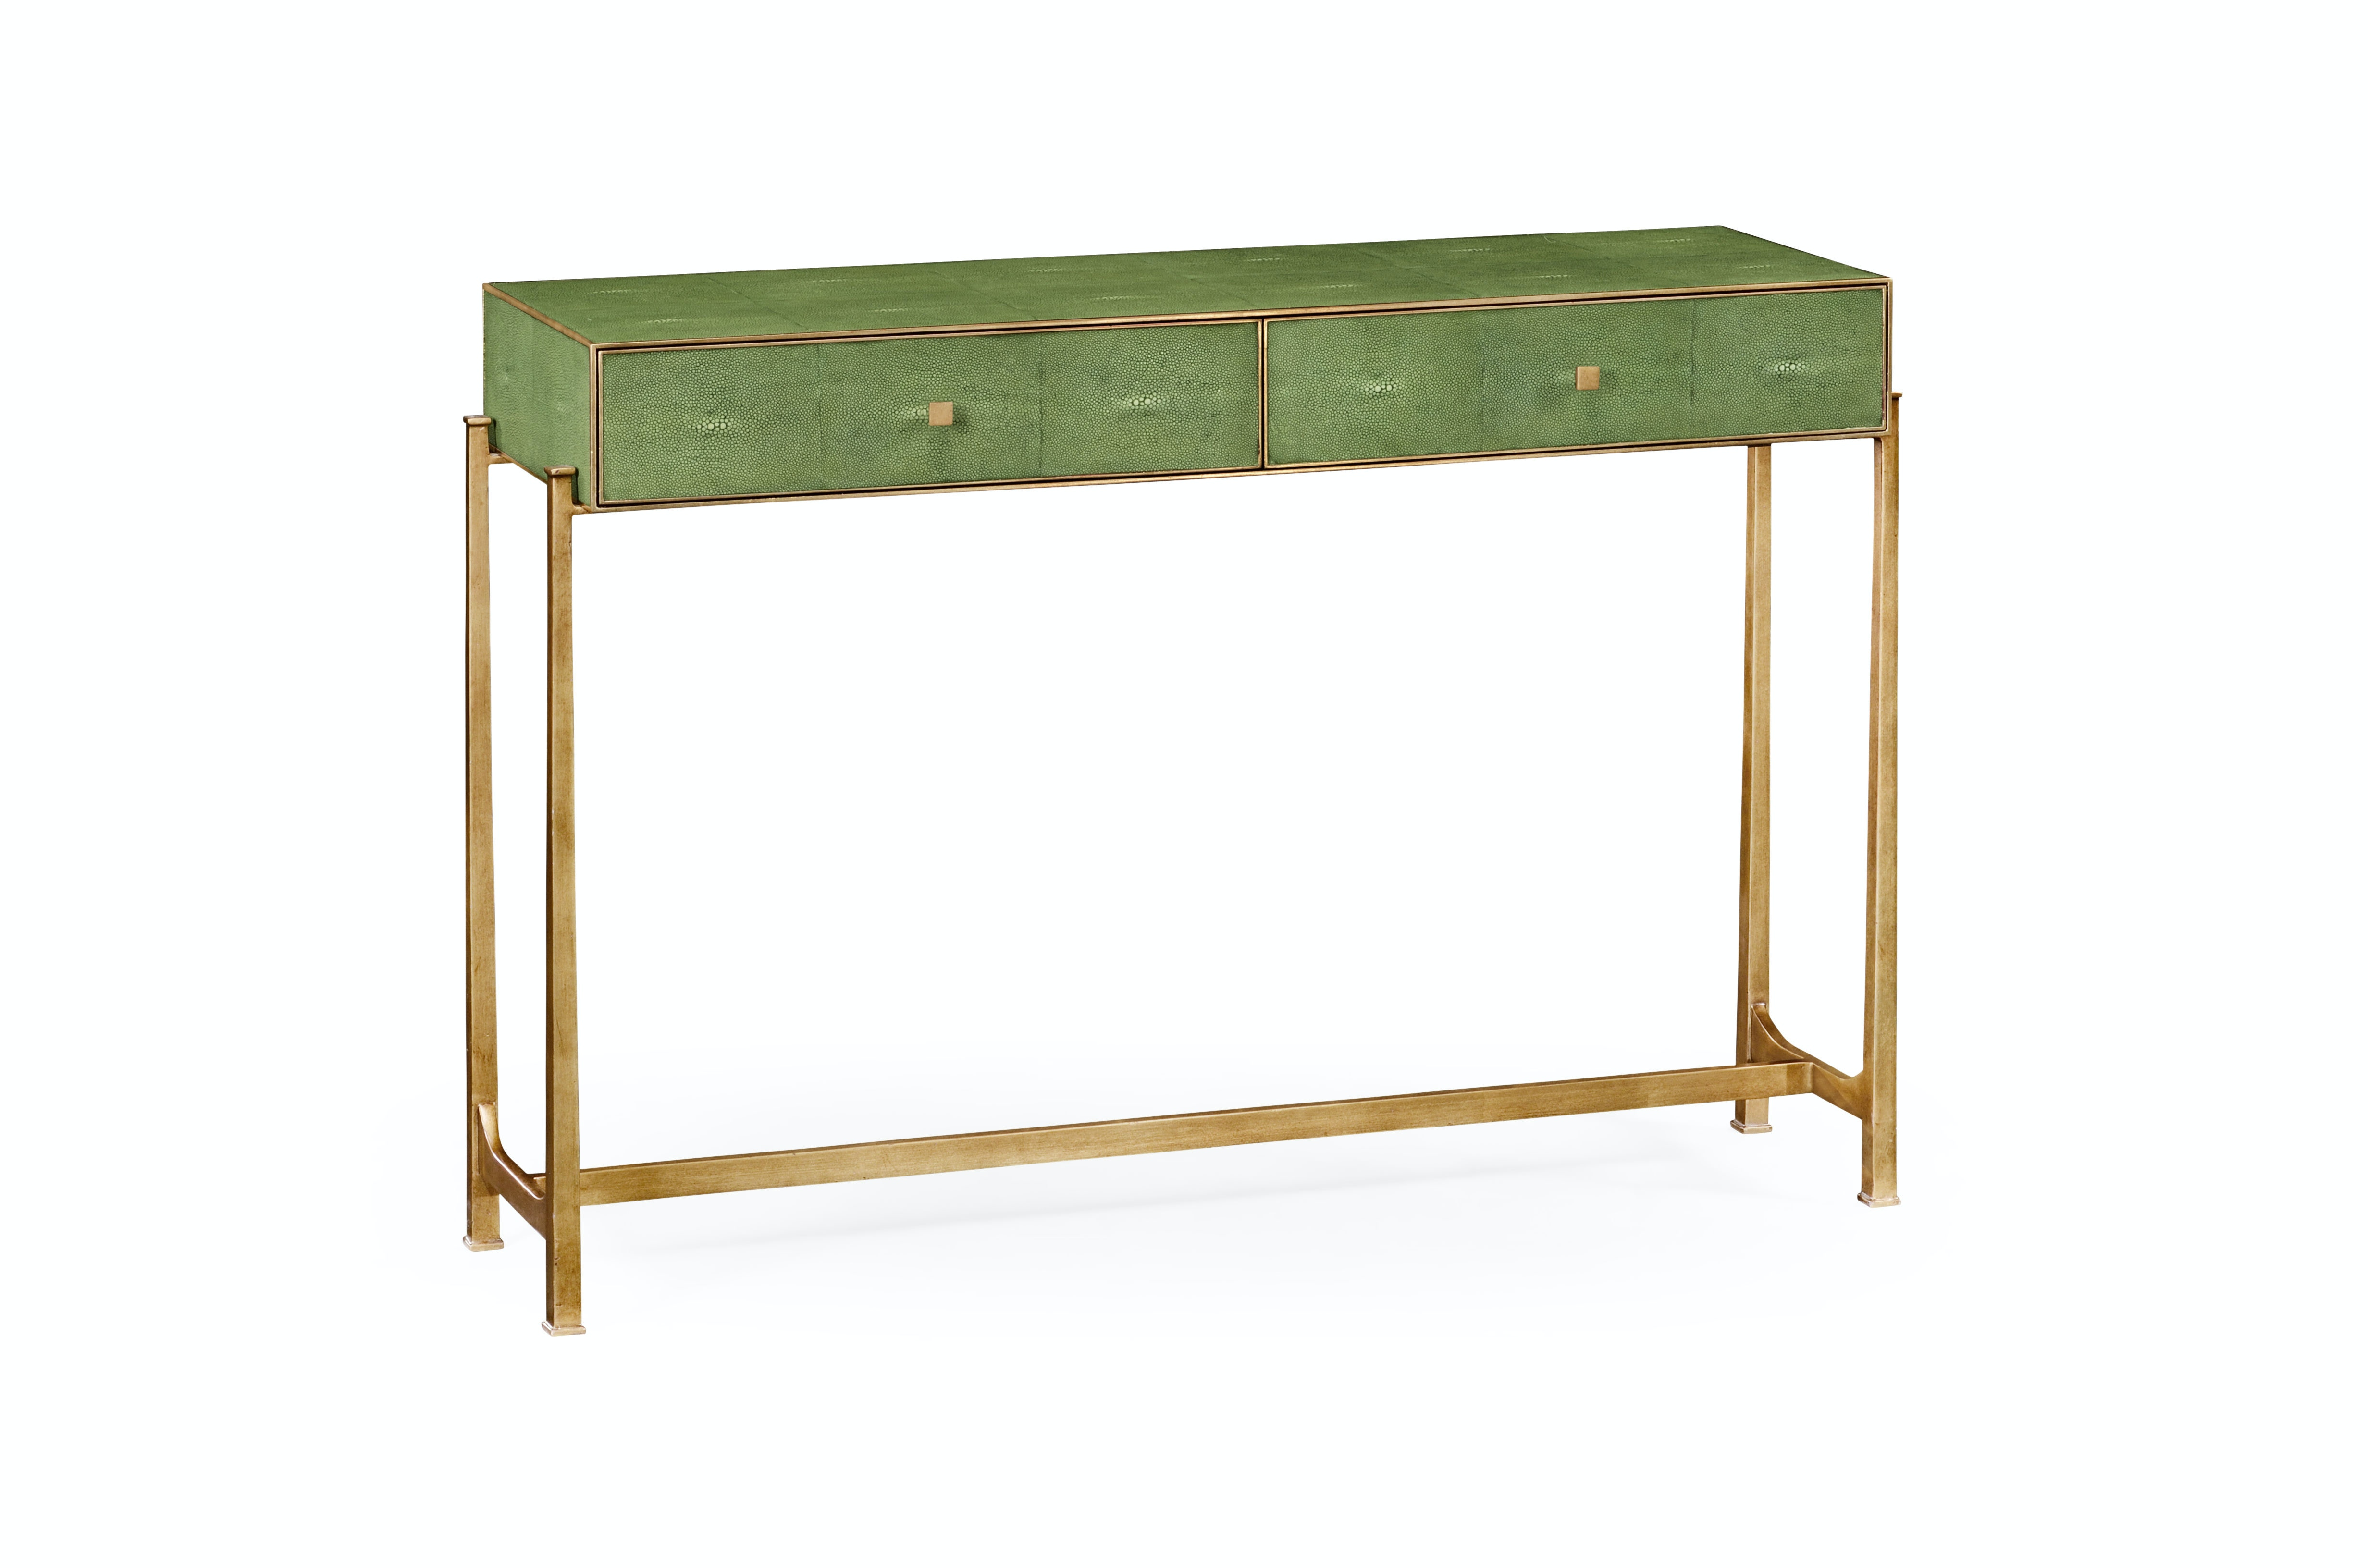 Amazing Jonathan Charles Green Faux Shagreen Gilded Console 494325 G SGG From  Walter E.